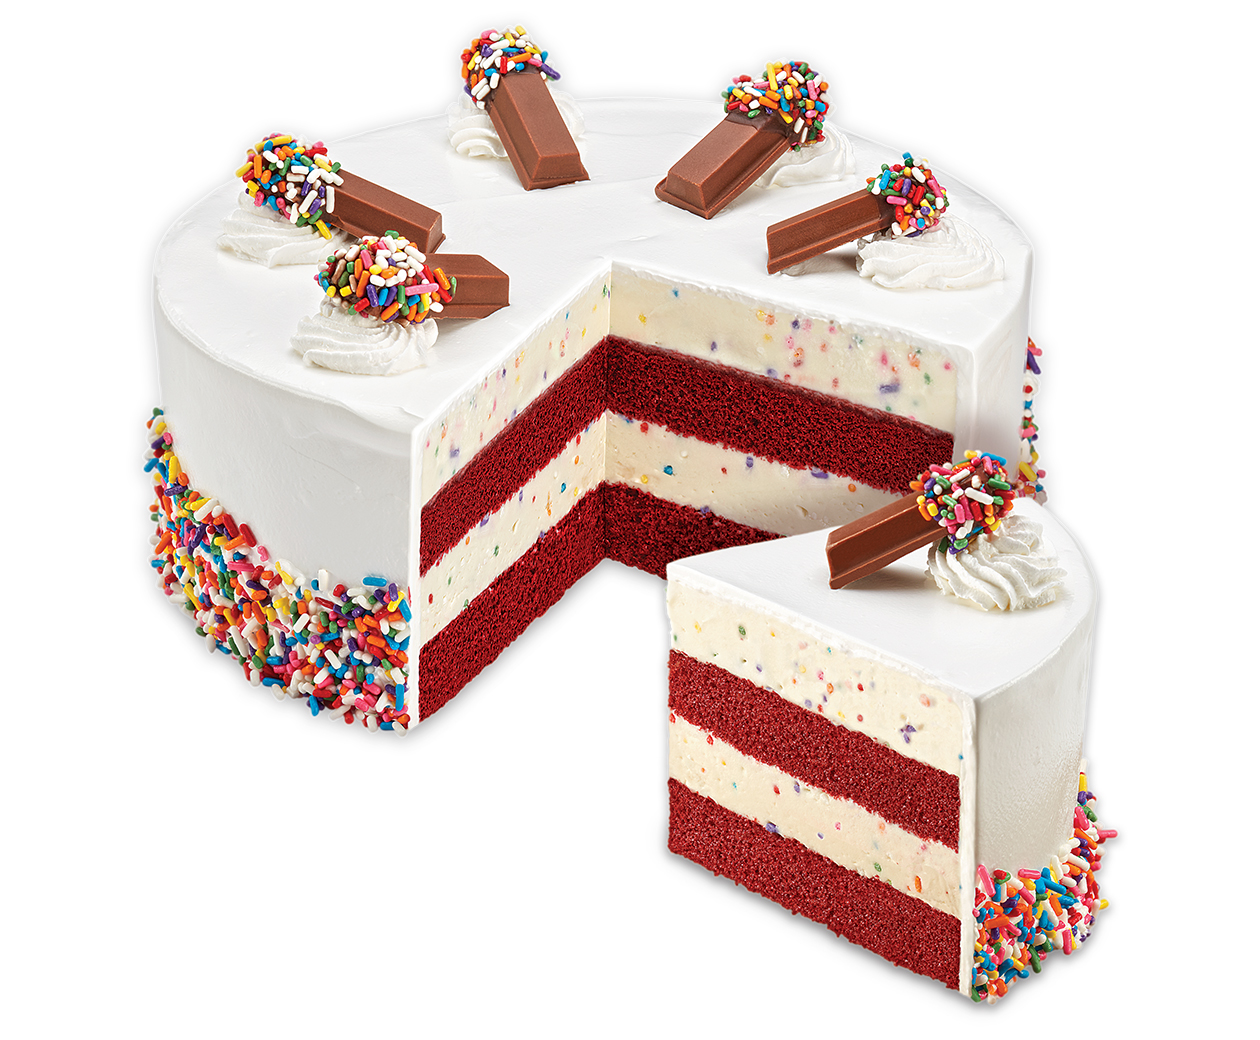 An Ice Cream Cake for Any Occasion! Why buy an Ice Cream Cake? Just imagine thick, moist cake, layered with some of the richest, creamiest ice cream in the world, plus all your favorite mix-ins, and your choice of fluffy white frosting or rich fudge ganache now imagine a cake made from a box mix.